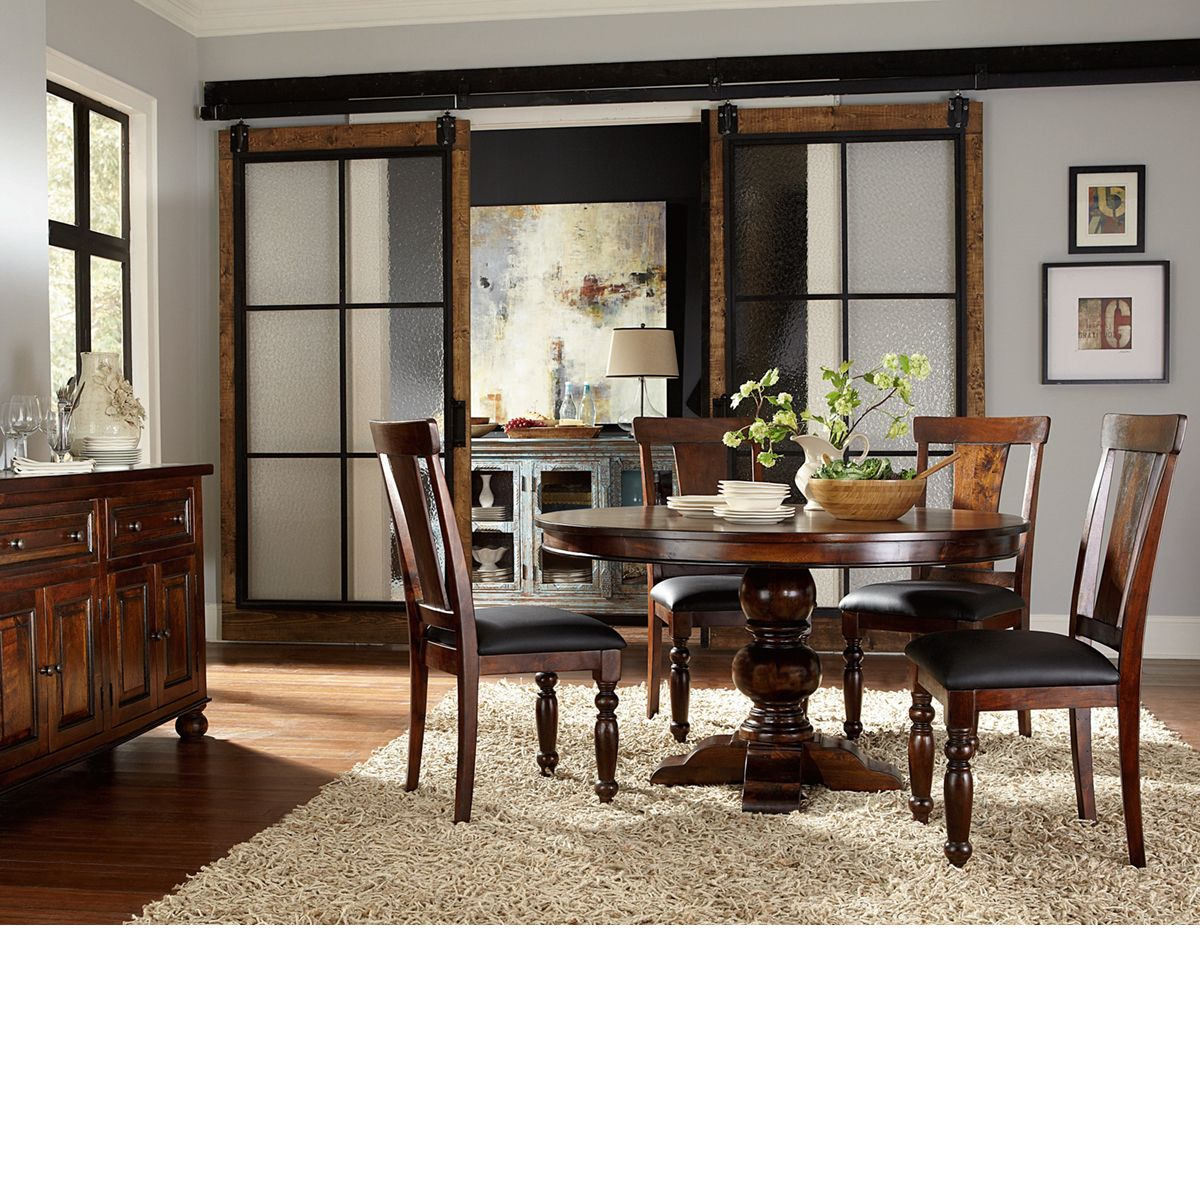 Null Furniture Classic Dining Room Furniture Dining Table